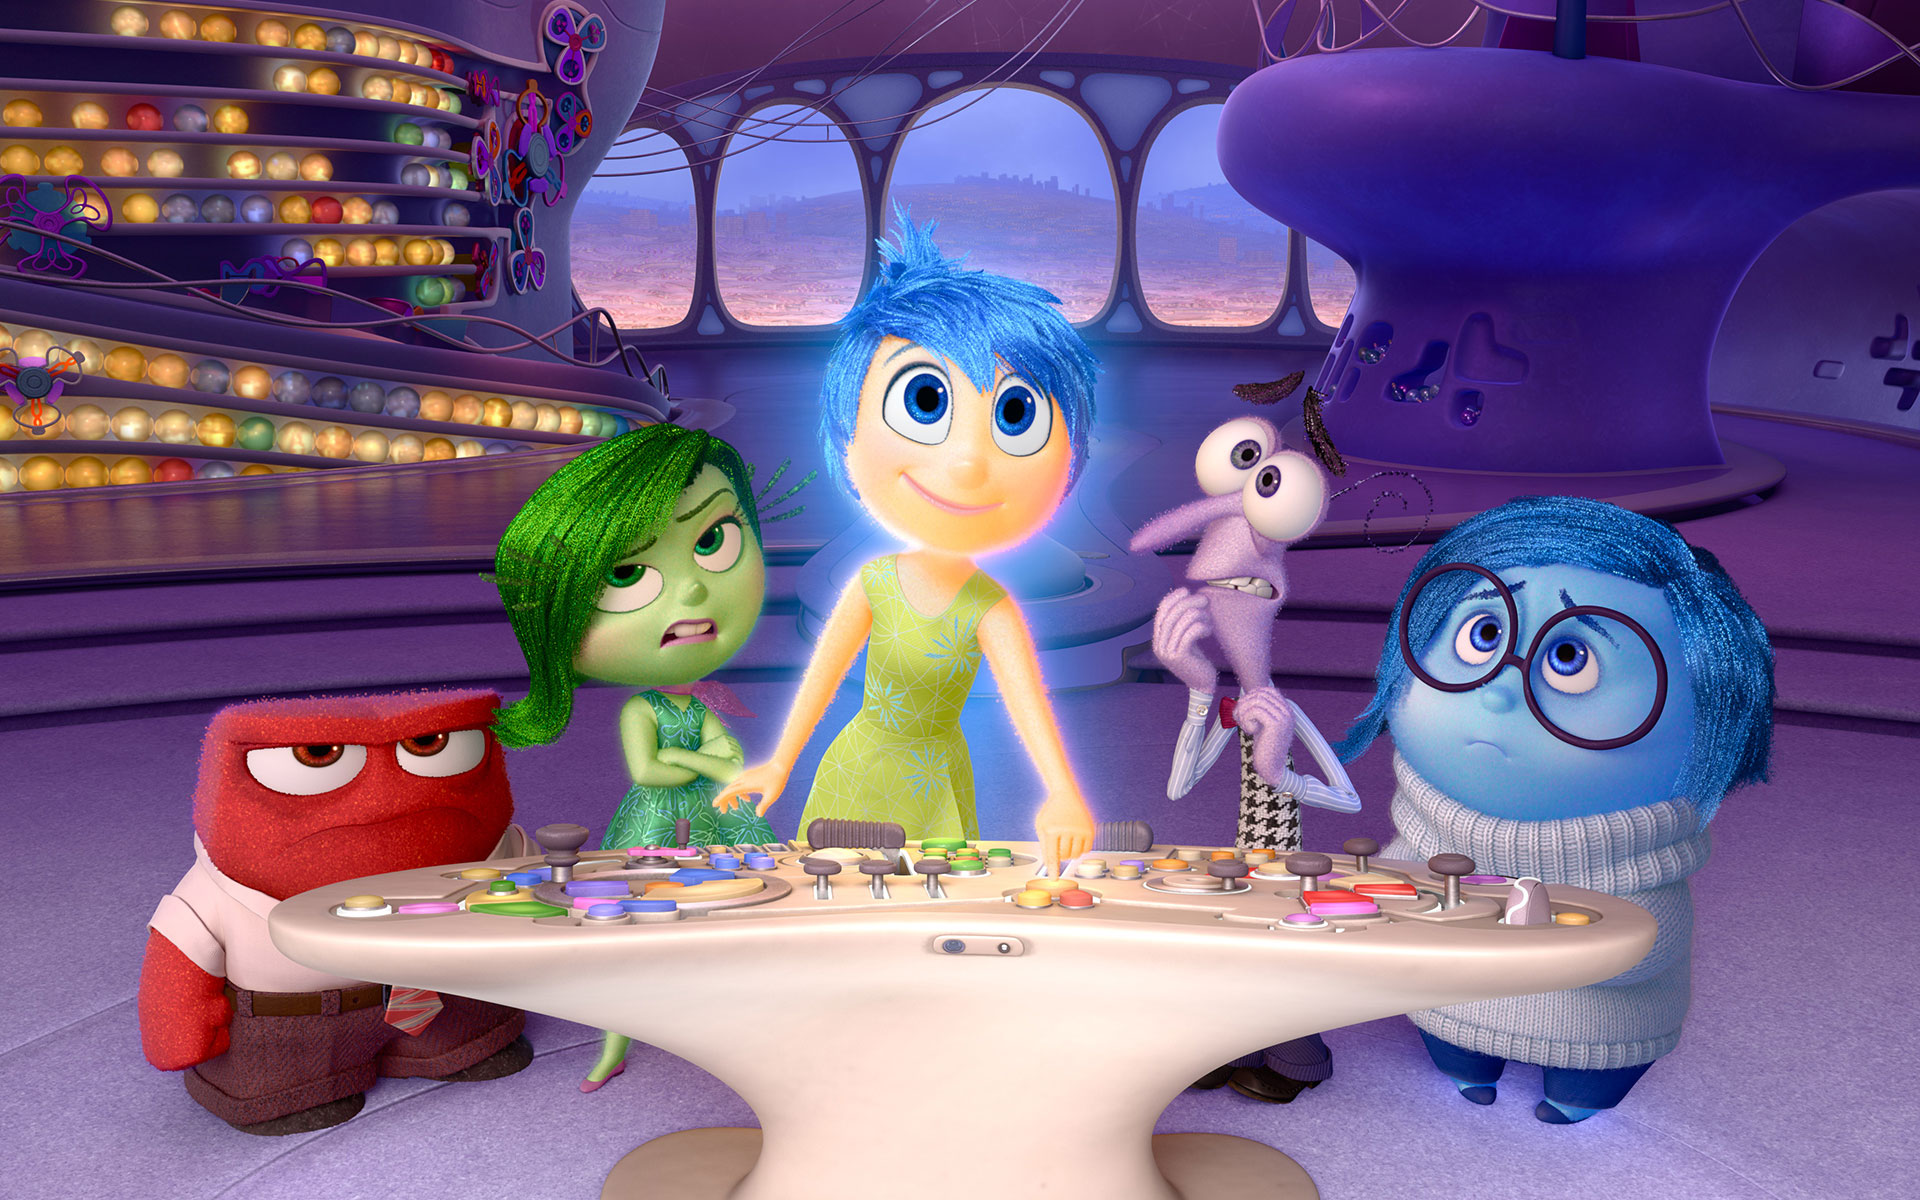 Disney Movie Inside Out 2015 Desktop Iphone 6 Wallpapers